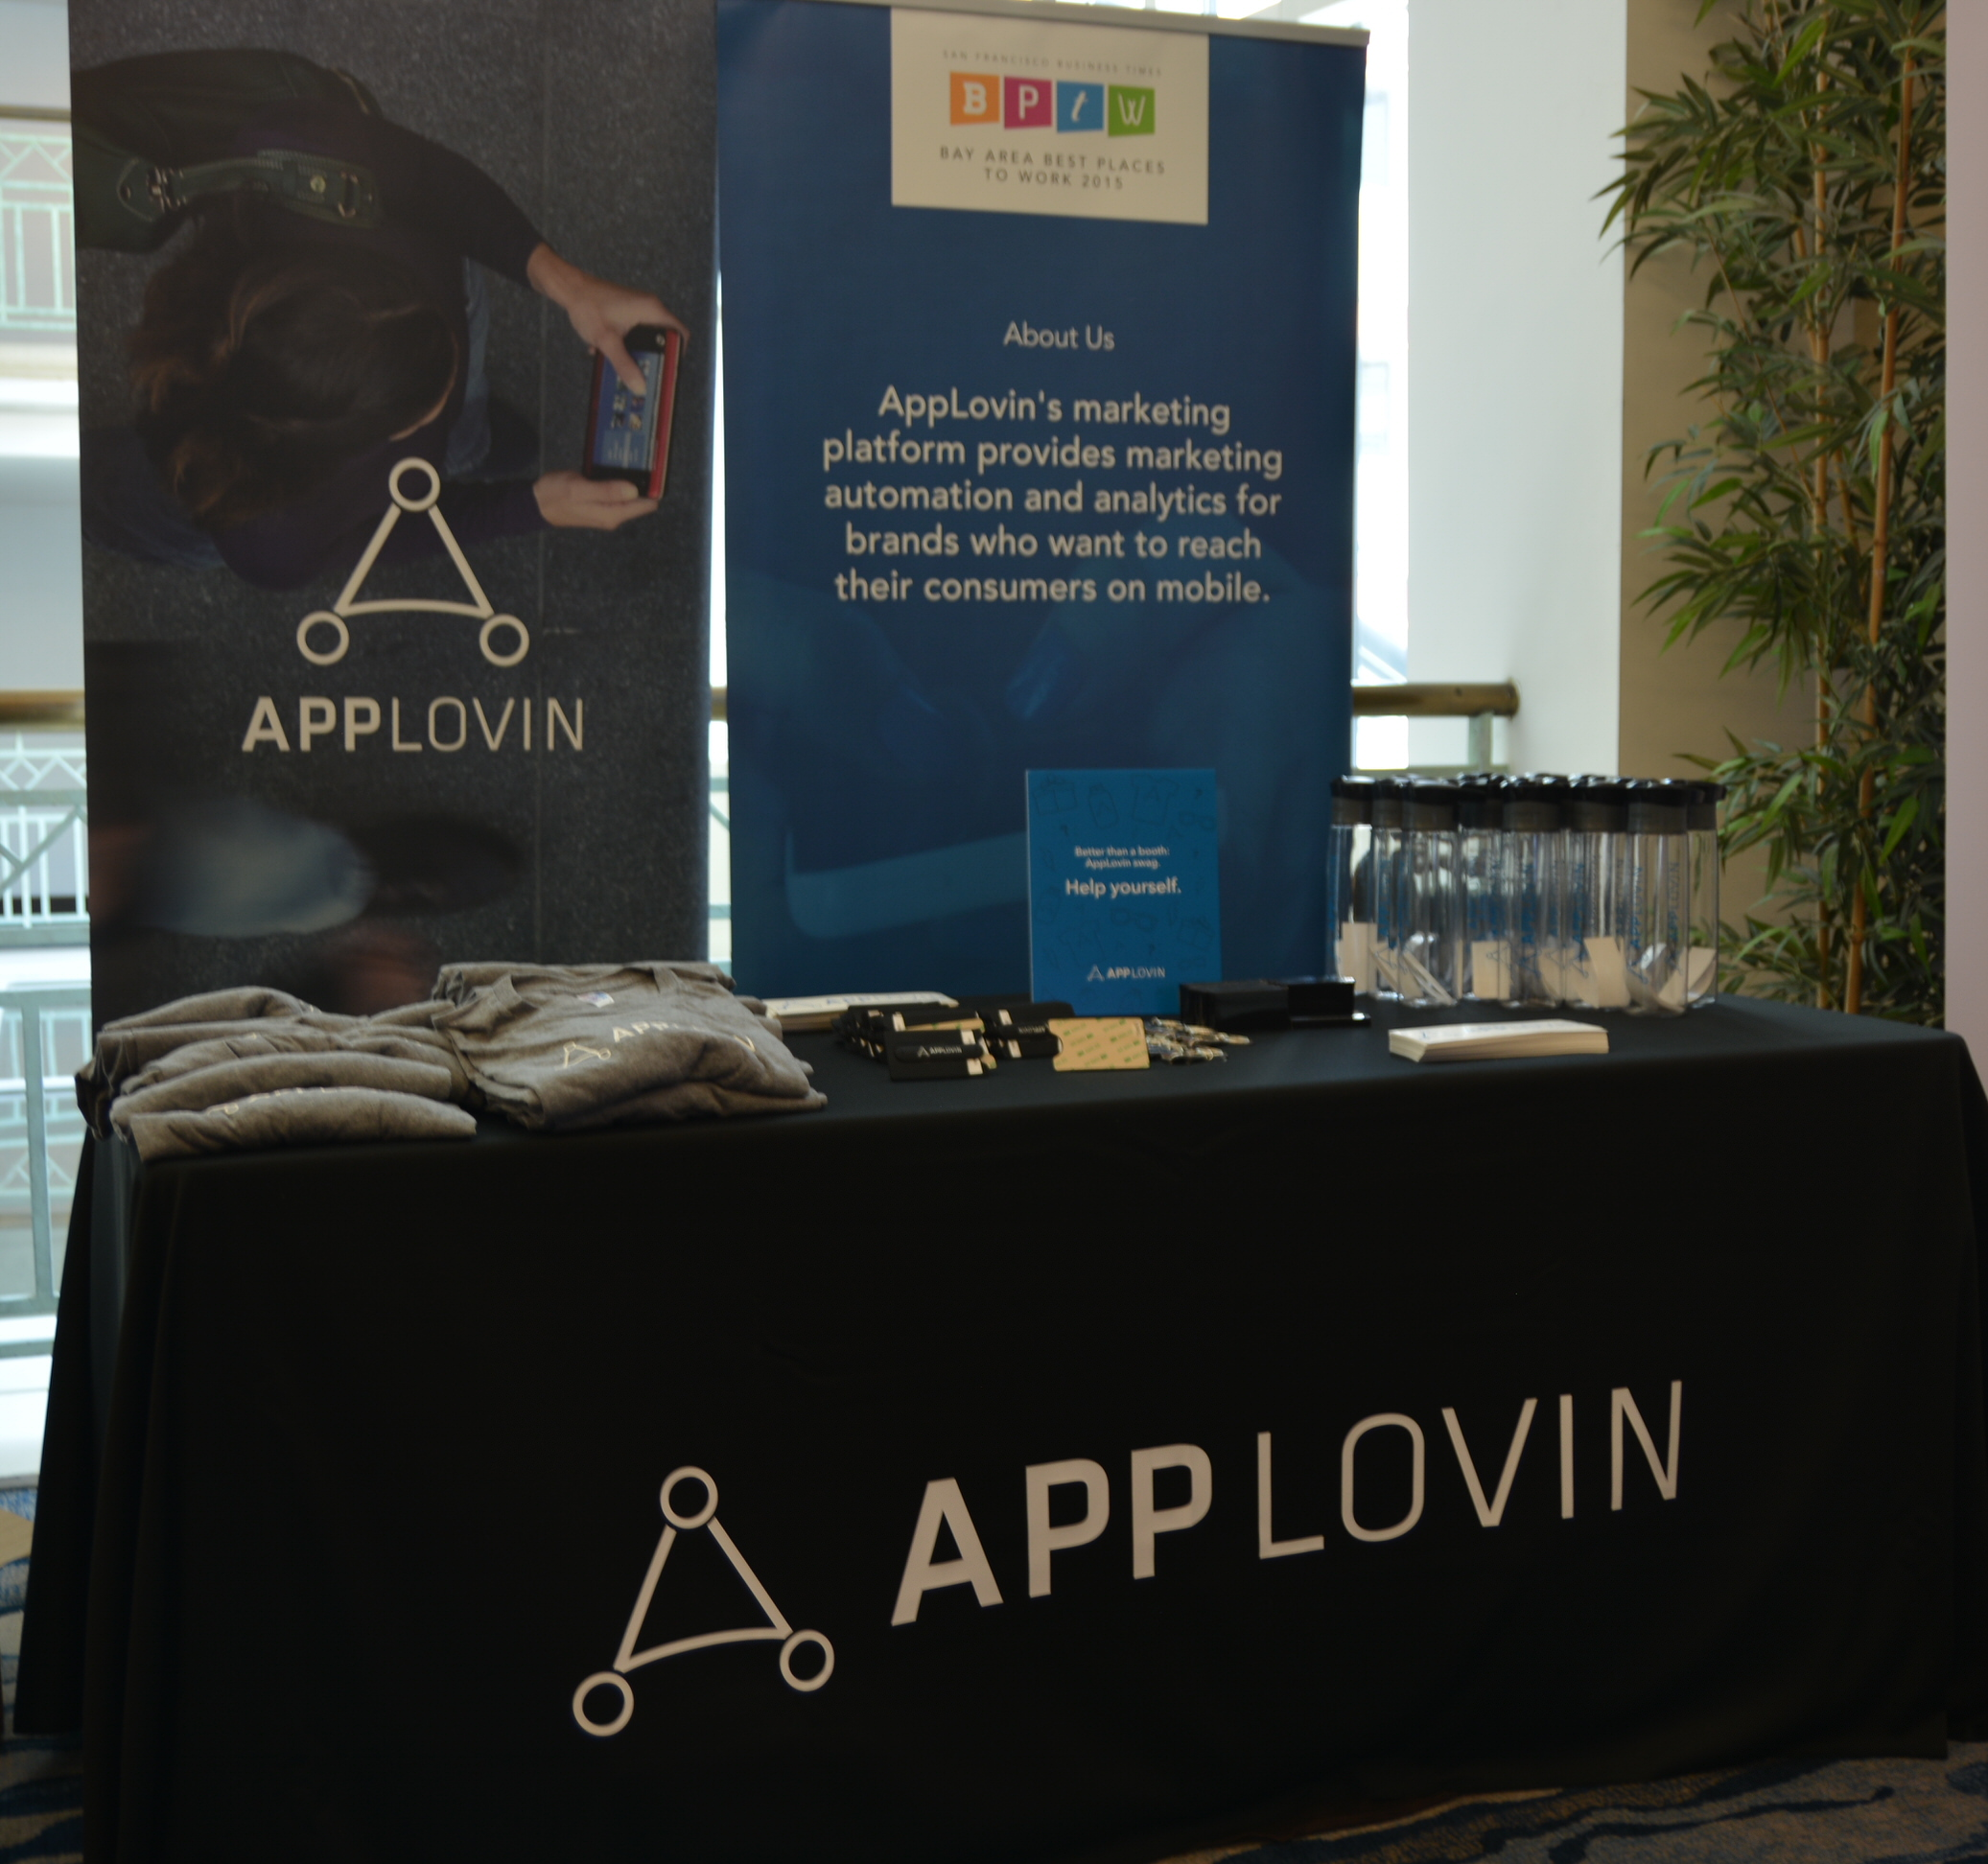 Applovin provides marketing automation and analytics for brands who want to reach their consumers on mobile.